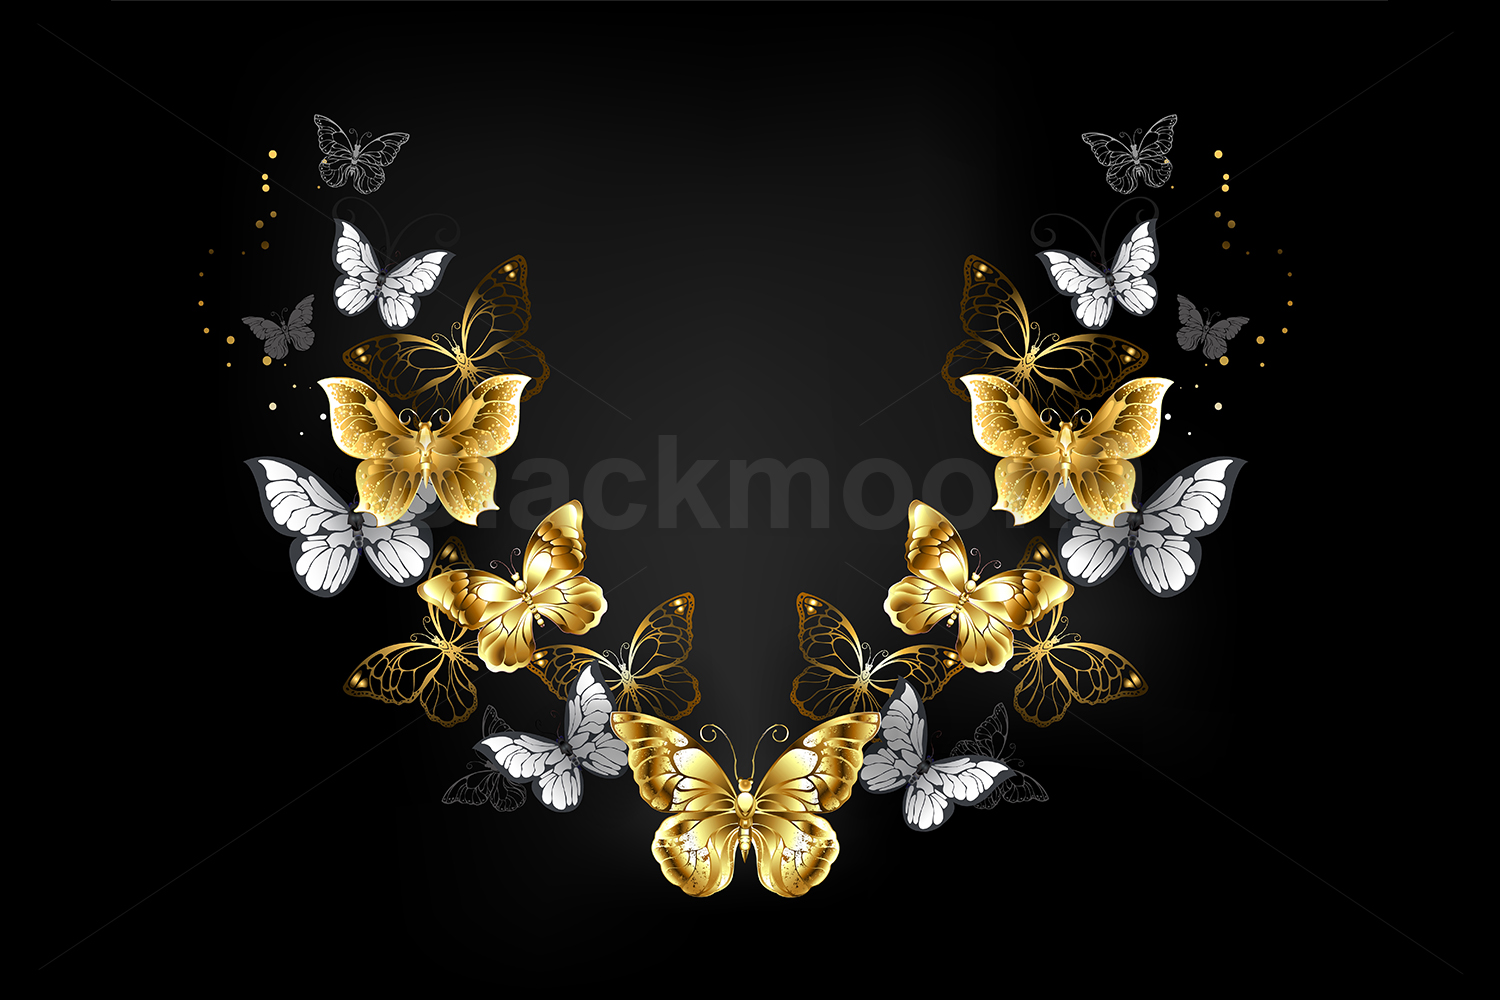 Symmetrical Pattern of Gold and White Butterflies example image 1